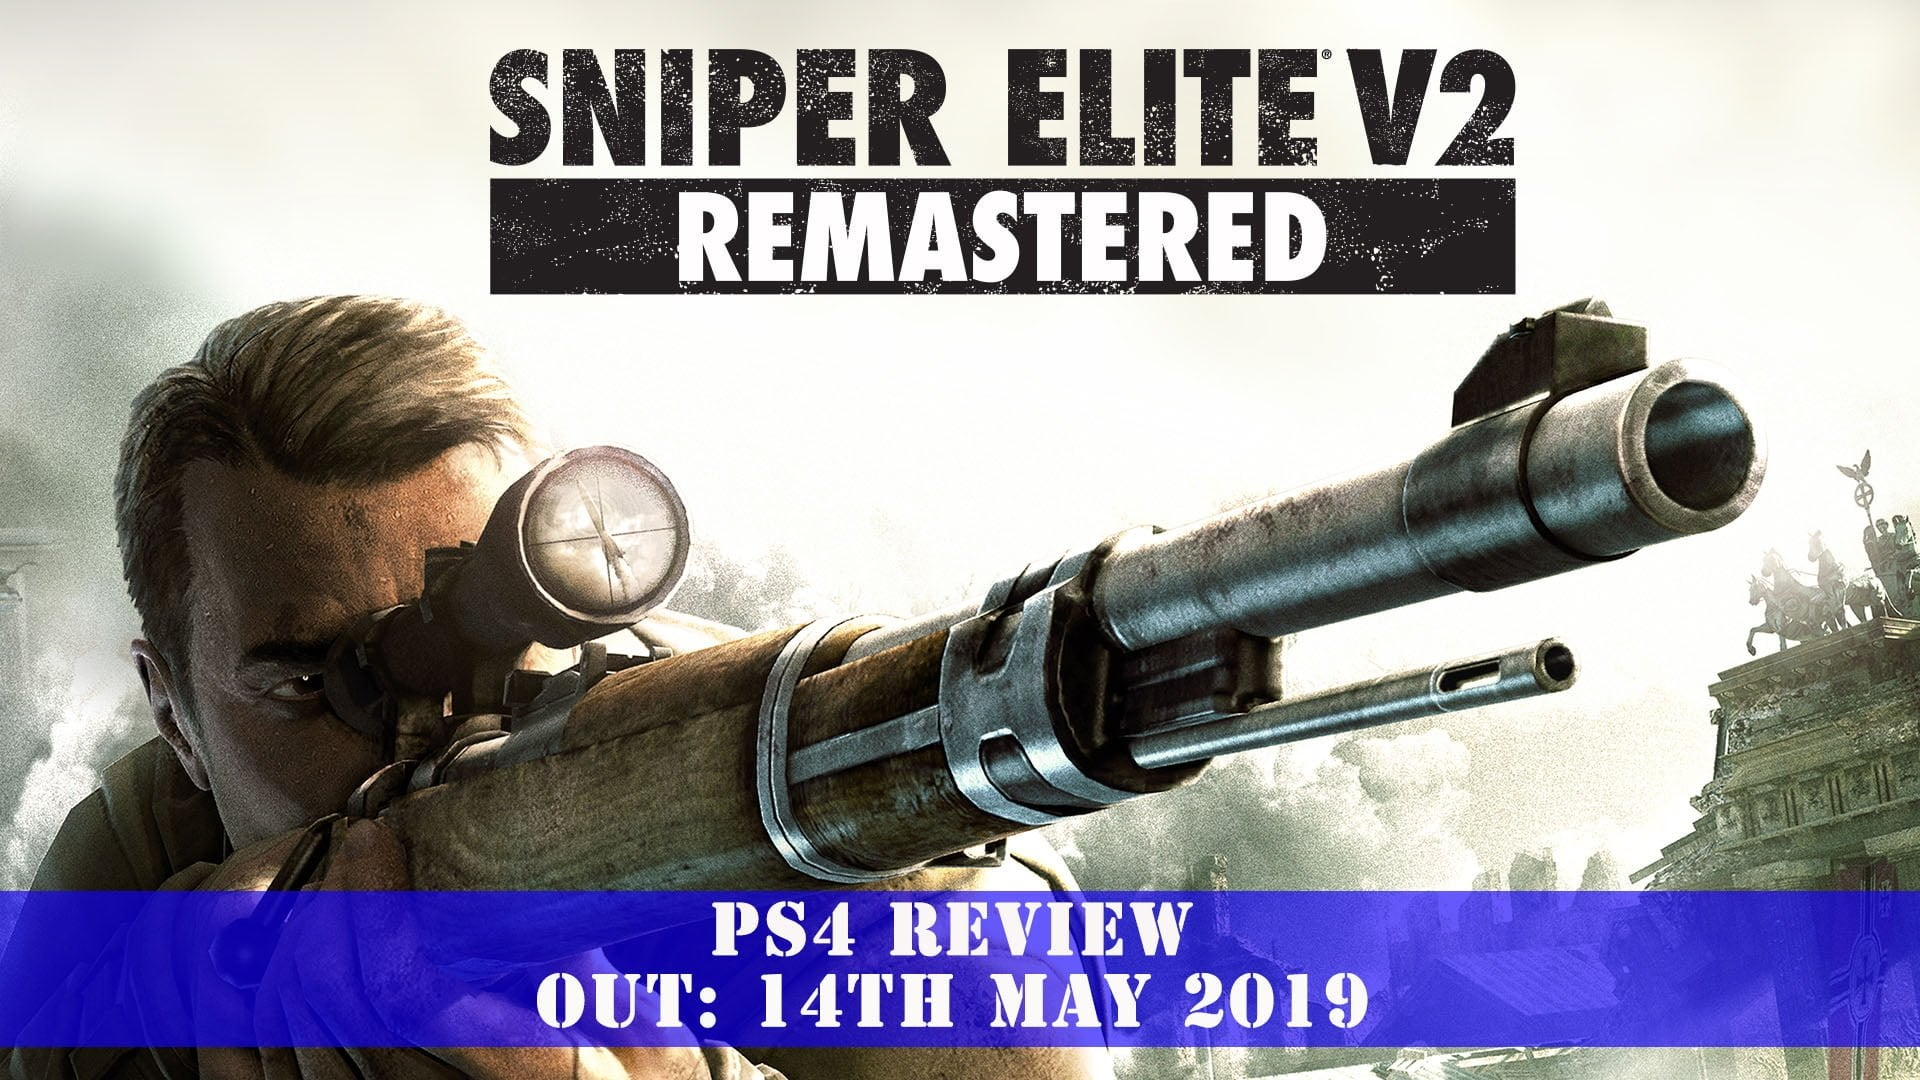 Sniper Elite V2 [Remastered] (PS4) Review